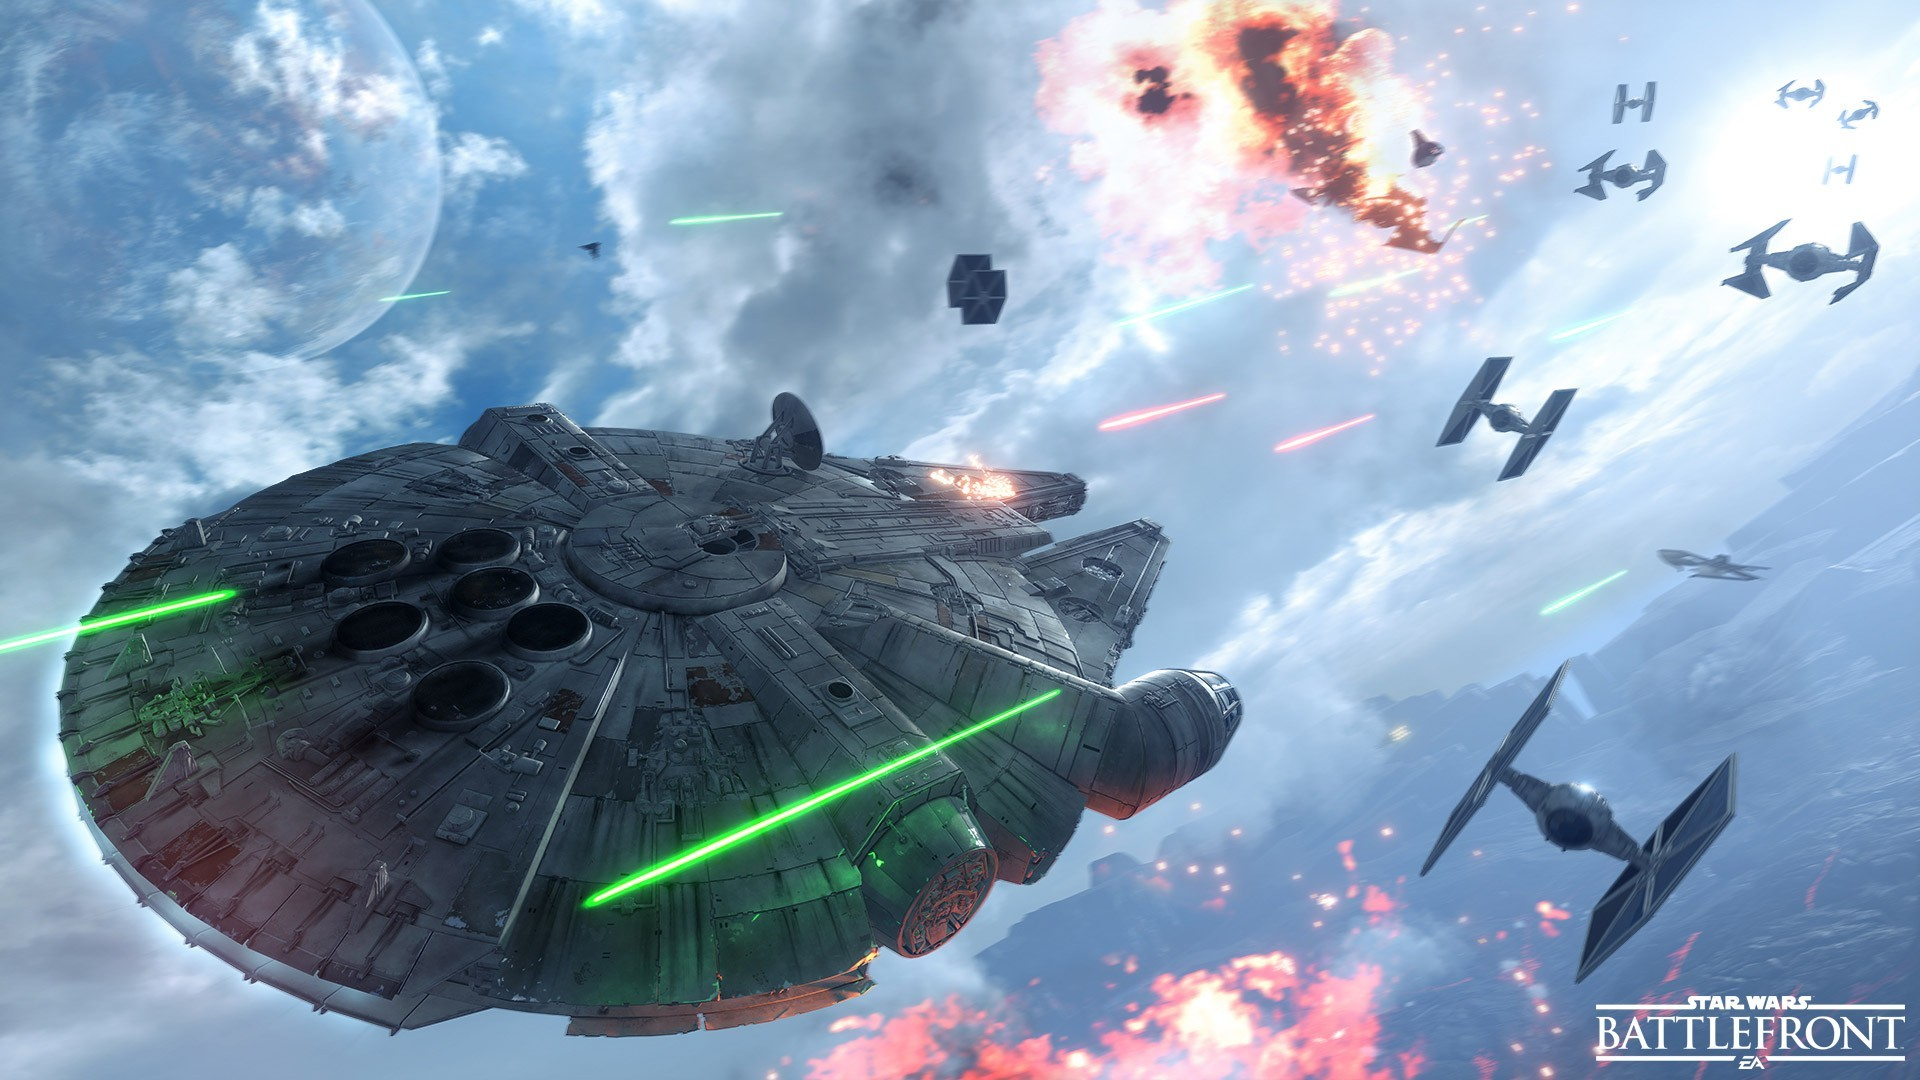 Star Wars: Battlefront, Video Games, Millennium Falcon, TIE Fighter  Wallpapers HD / Desktop and Mobile Backgrounds